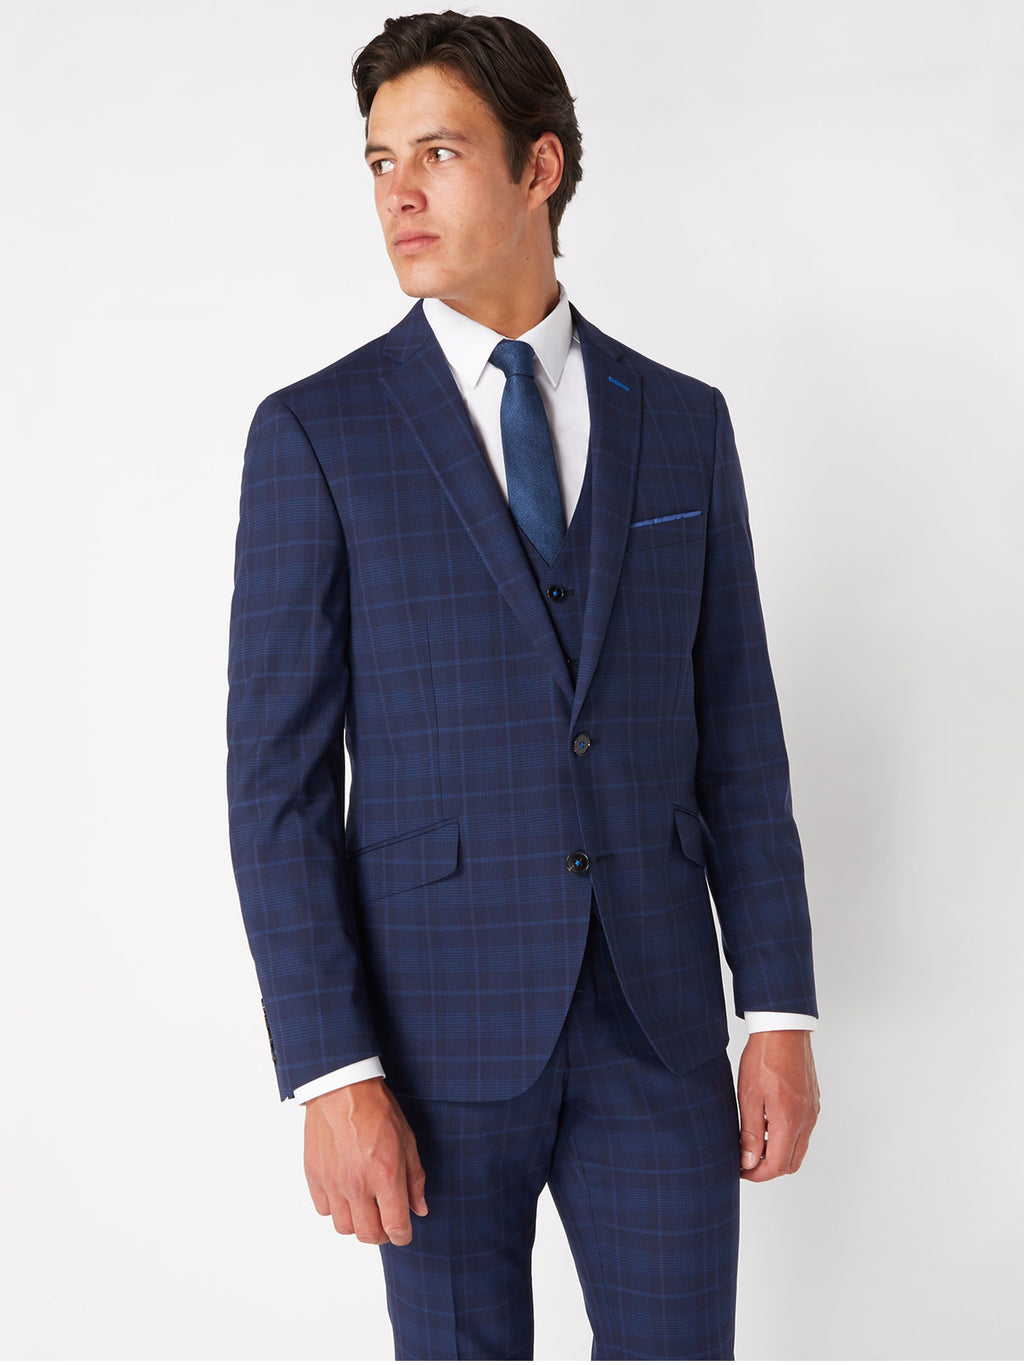 Navy Check 3-Piece Suit